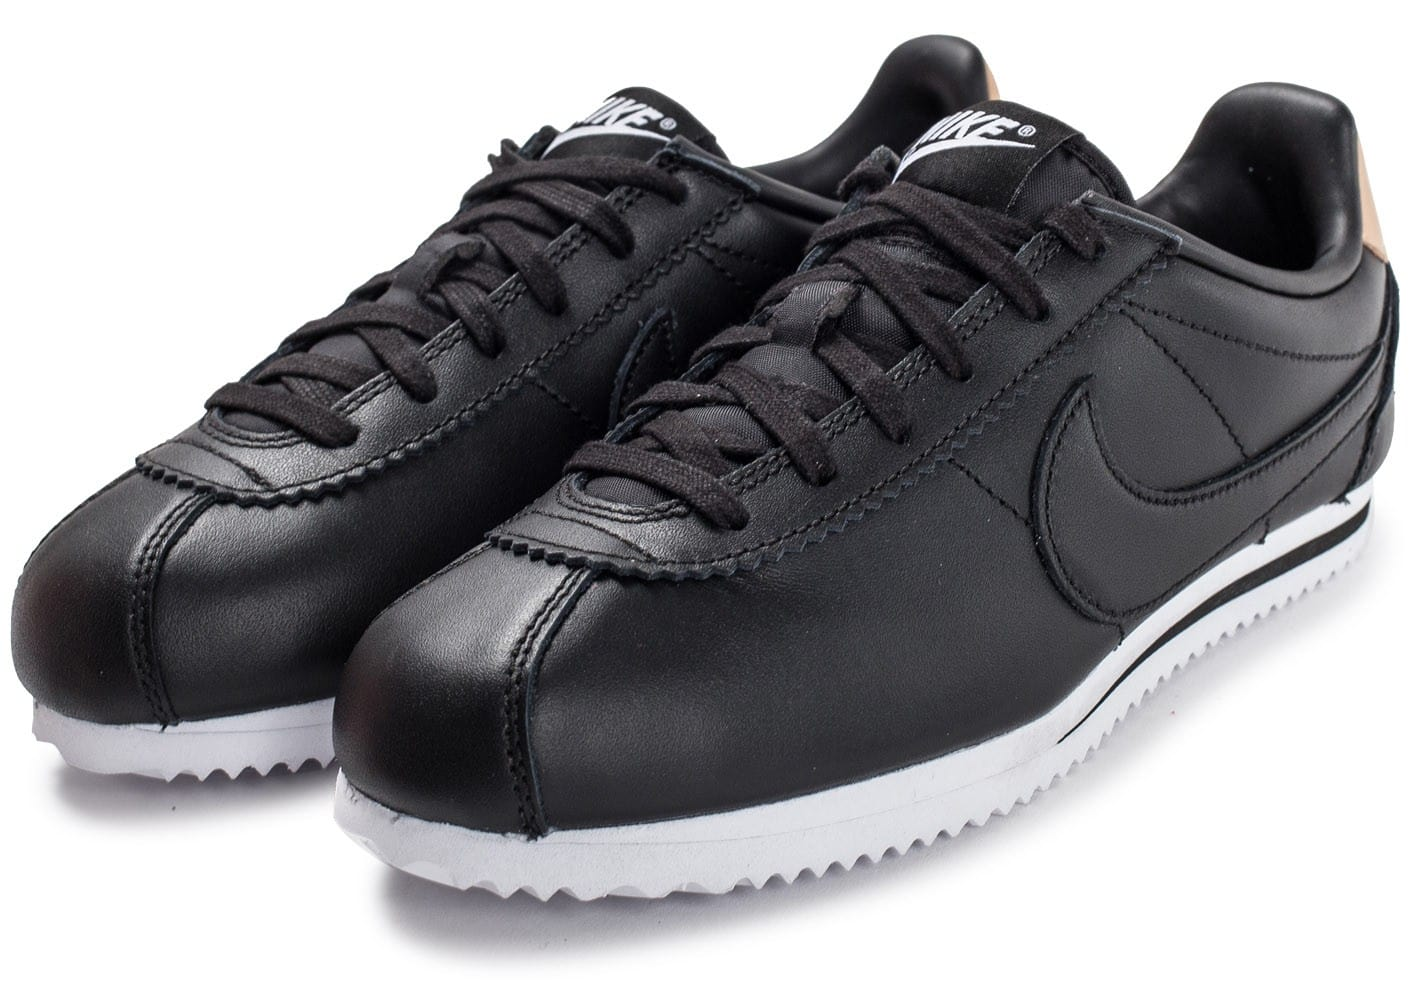 nike cortez junior se noire chaussures toutes les baskets sold es chausport. Black Bedroom Furniture Sets. Home Design Ideas